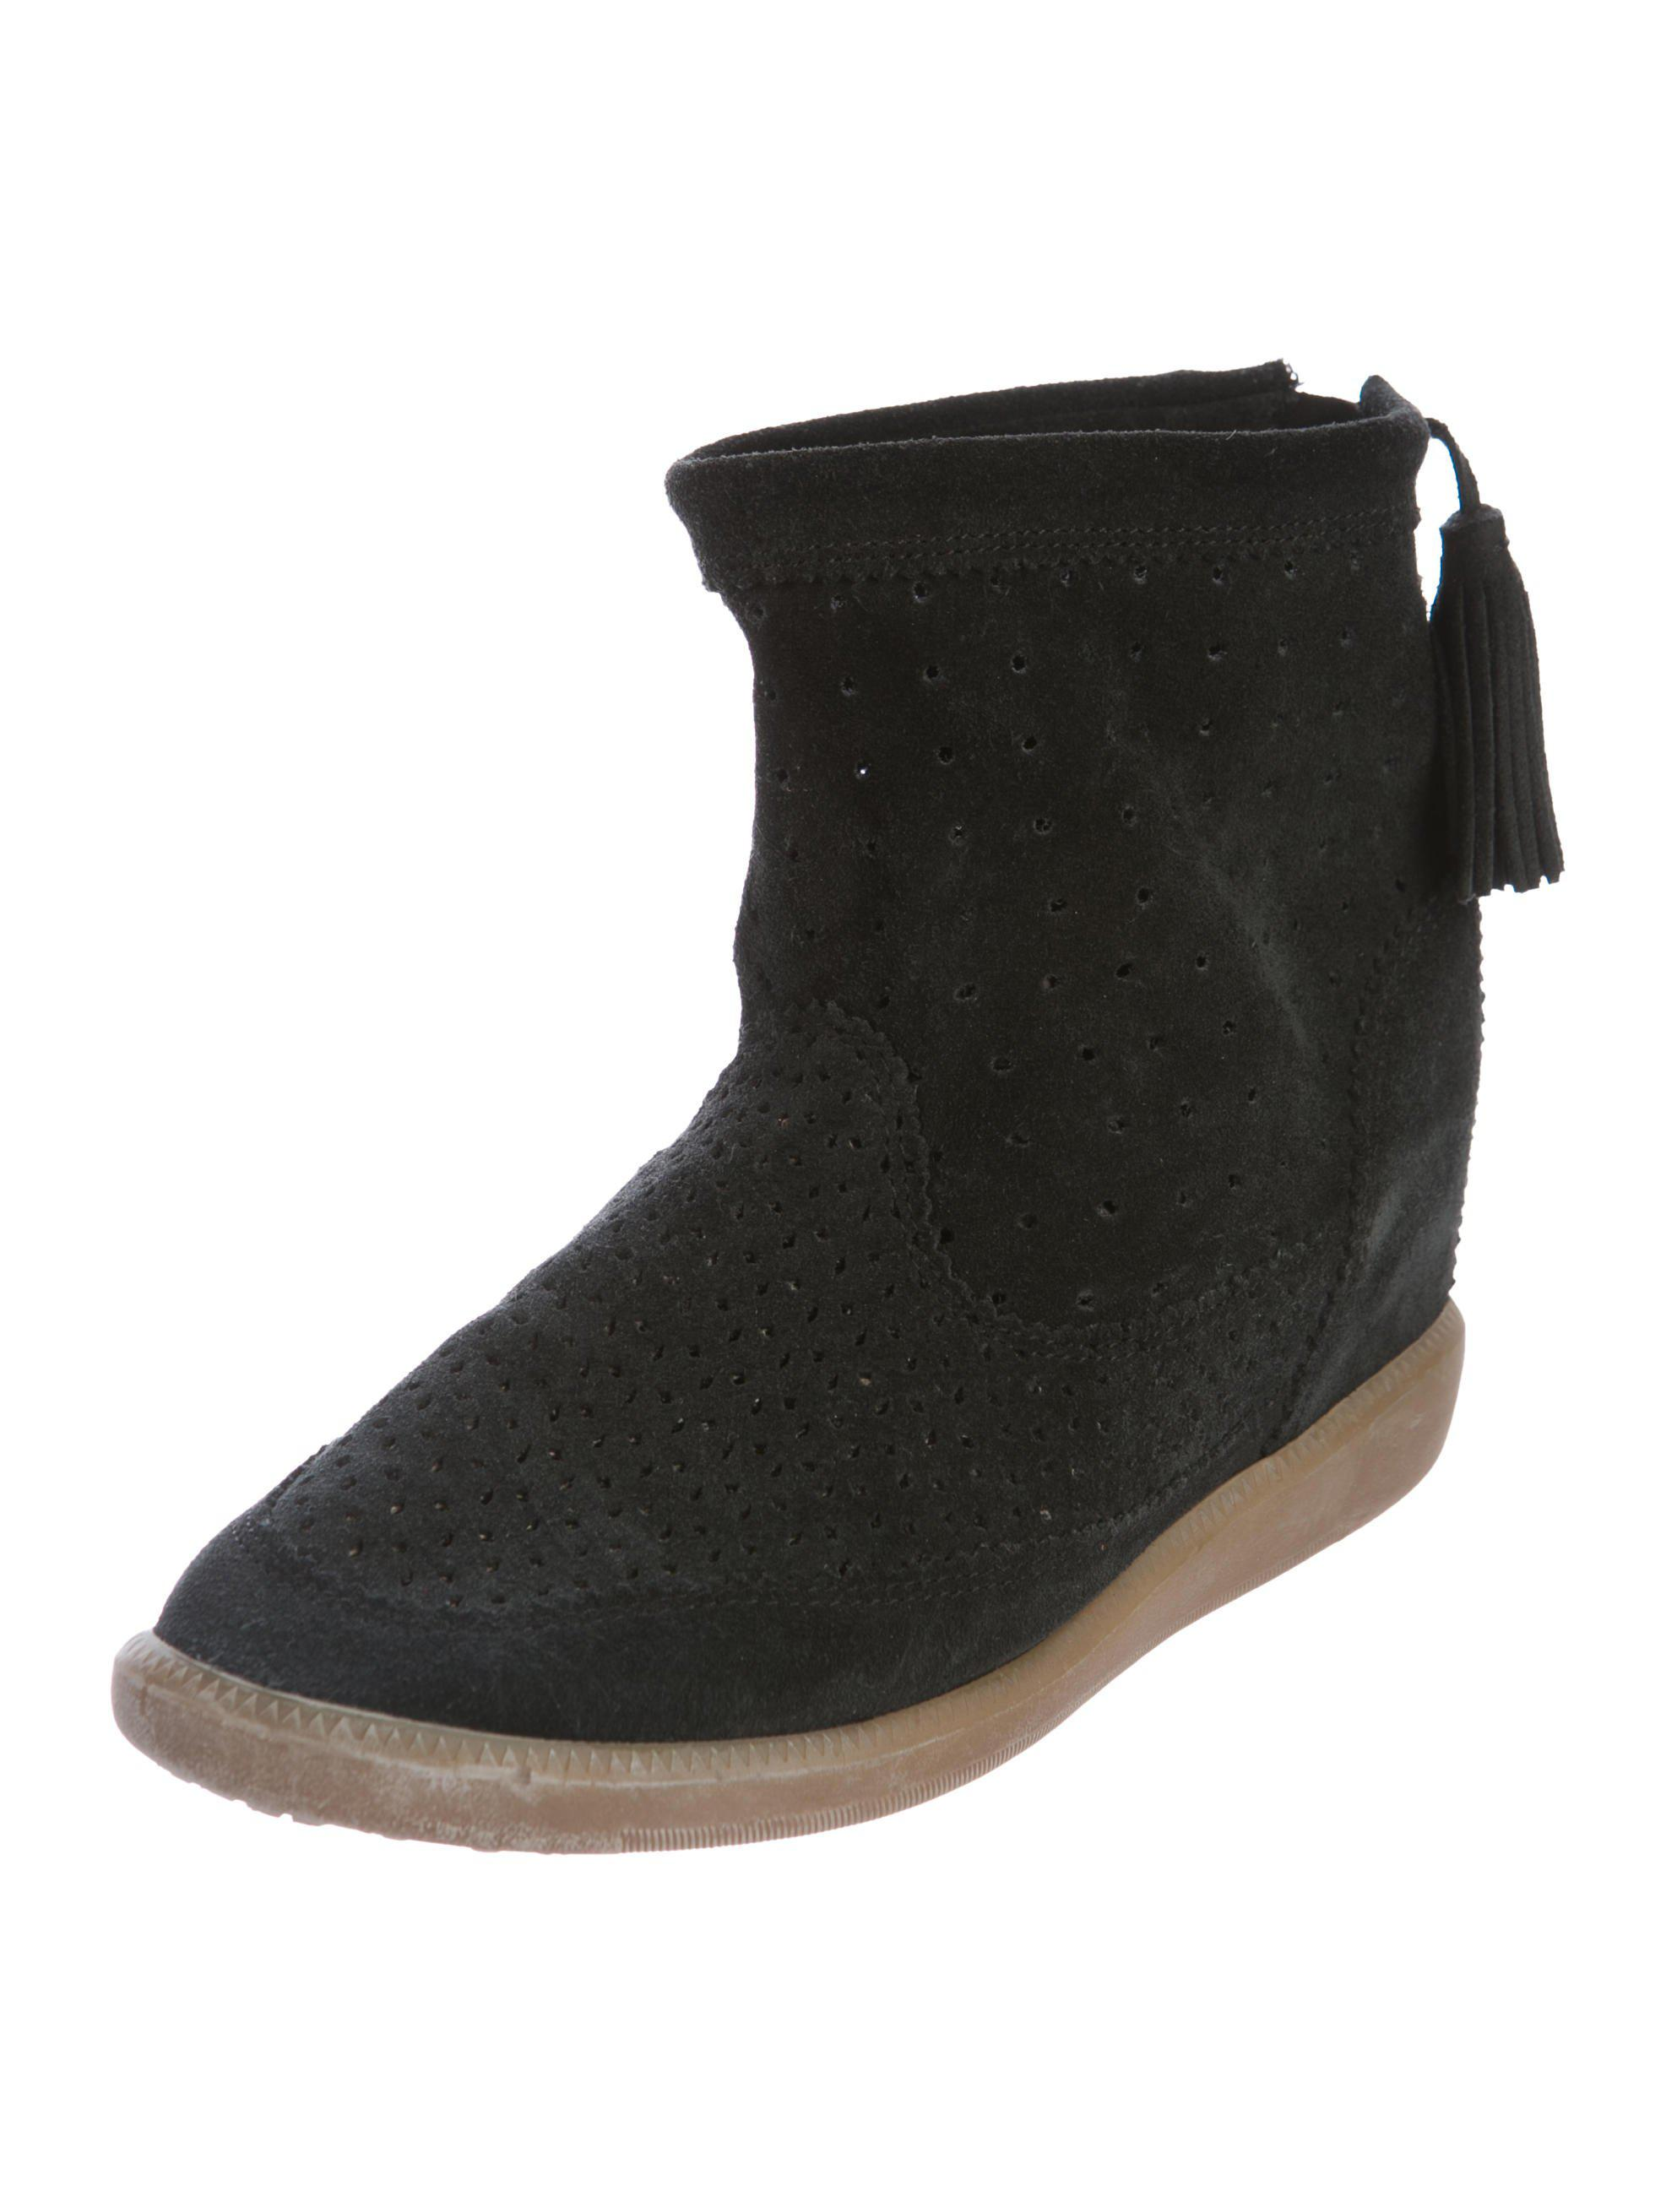 665c1d88abd1 Lyst - Isabel marant Suede Wedge Boots in Black